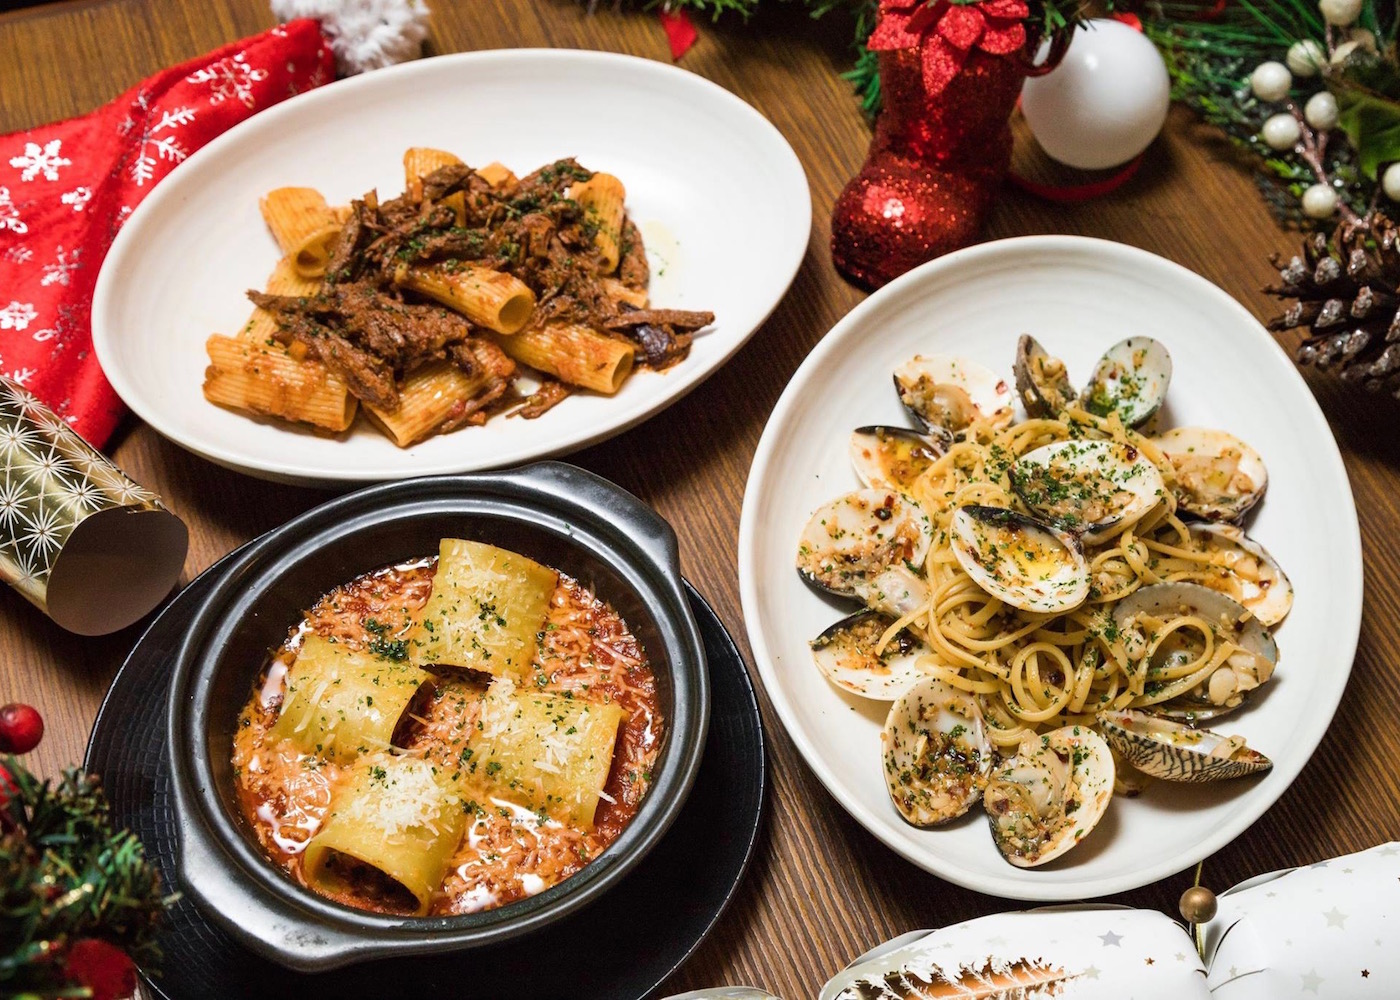 Christmas lunch at Seminyak Italian Food at Double-Six Luxury Hotel in Bali, Indonesia